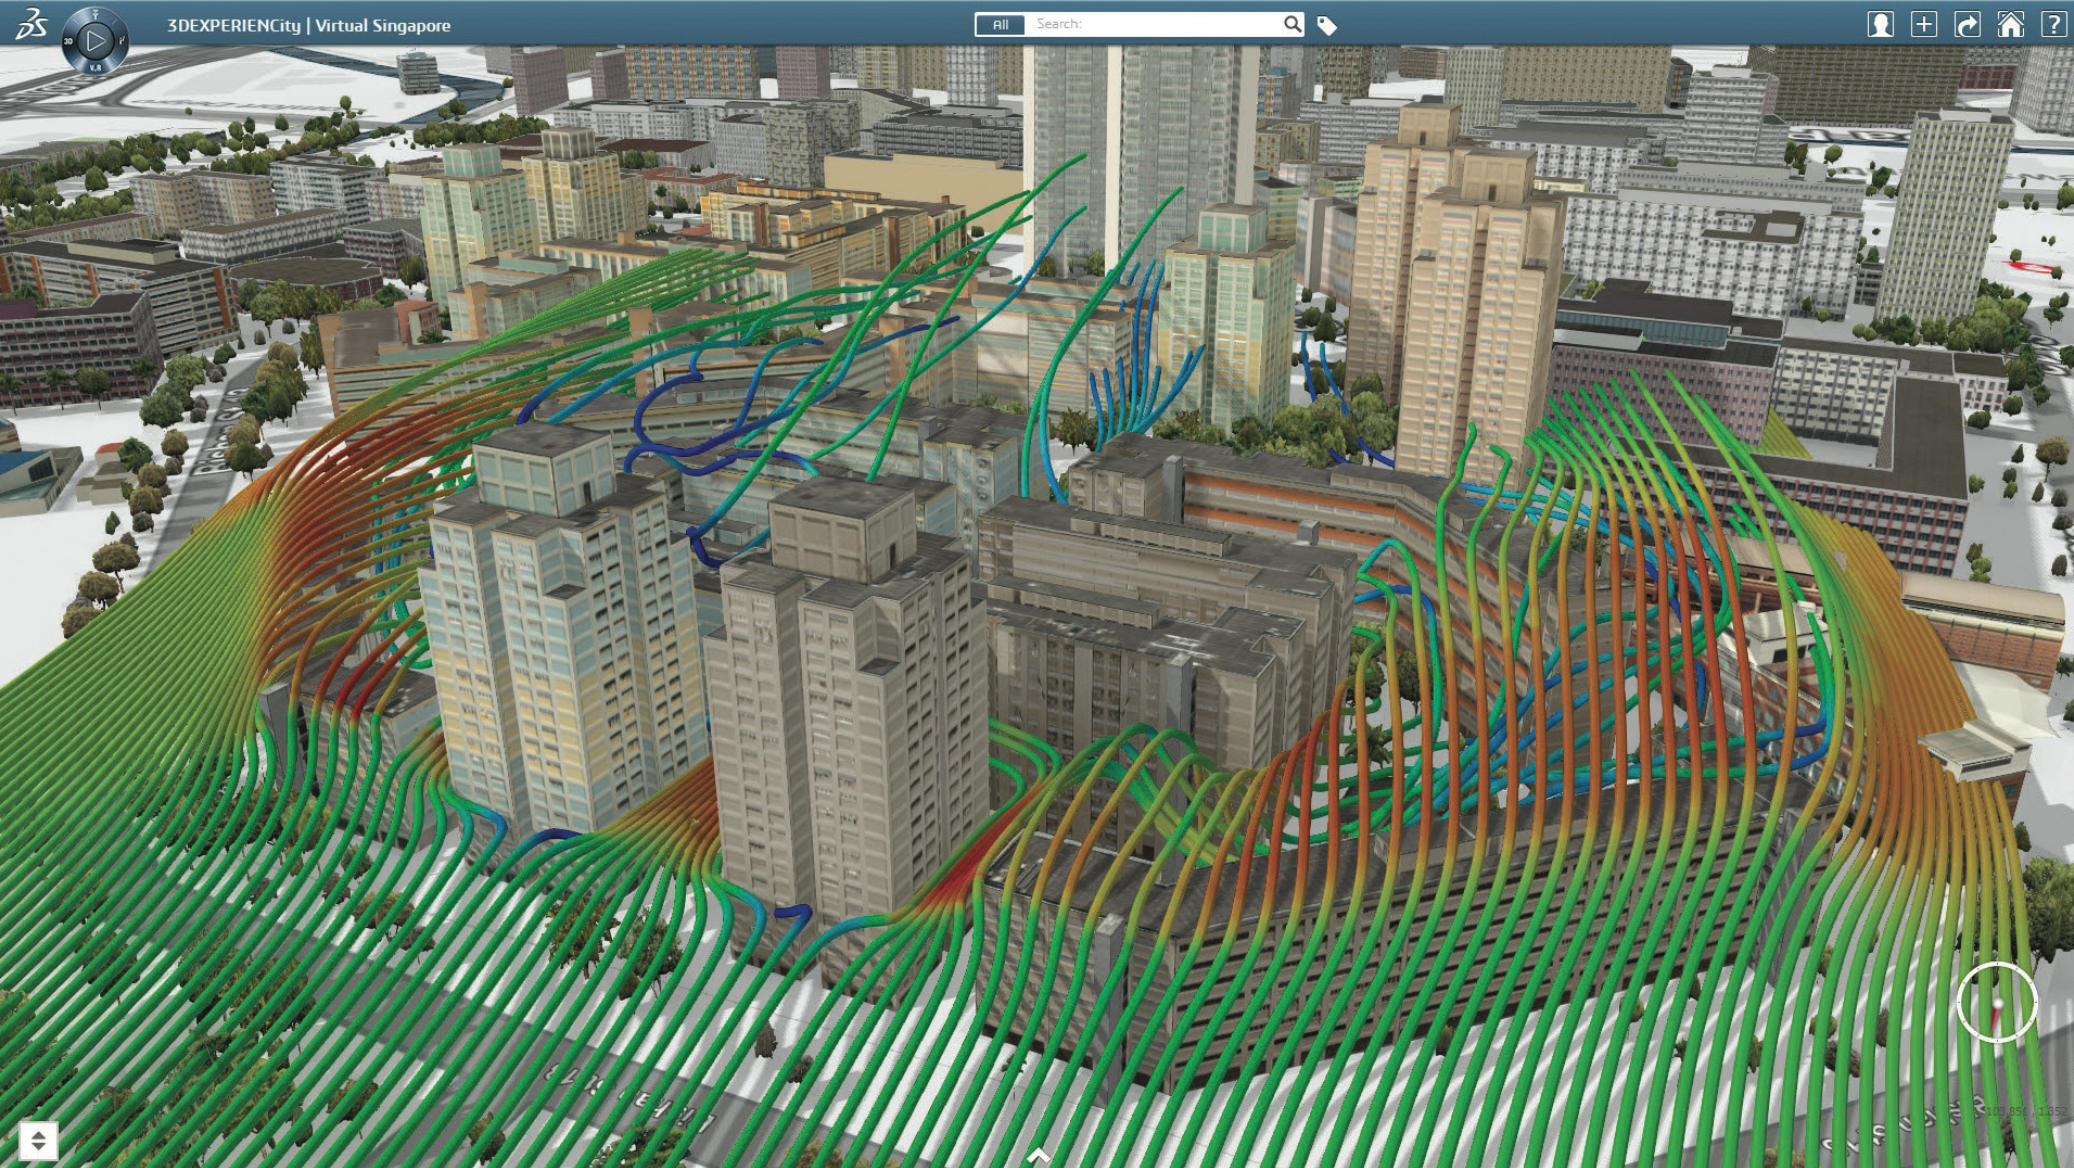 3DEXPERIENCity, Wind Simulation for Singapore City, Singapore.